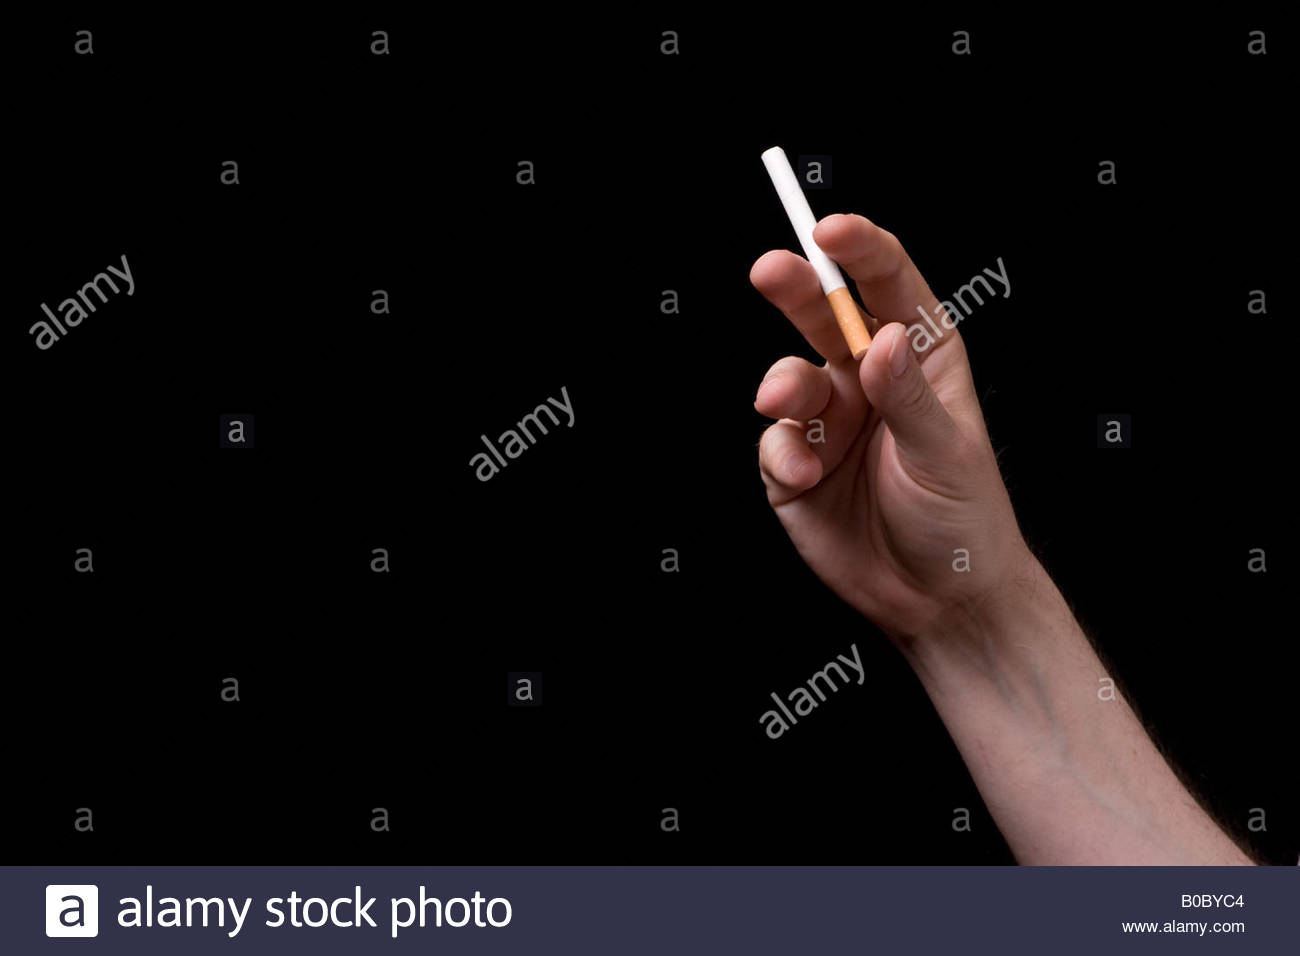 A hand holding a cigarette, UK. - Stock Image